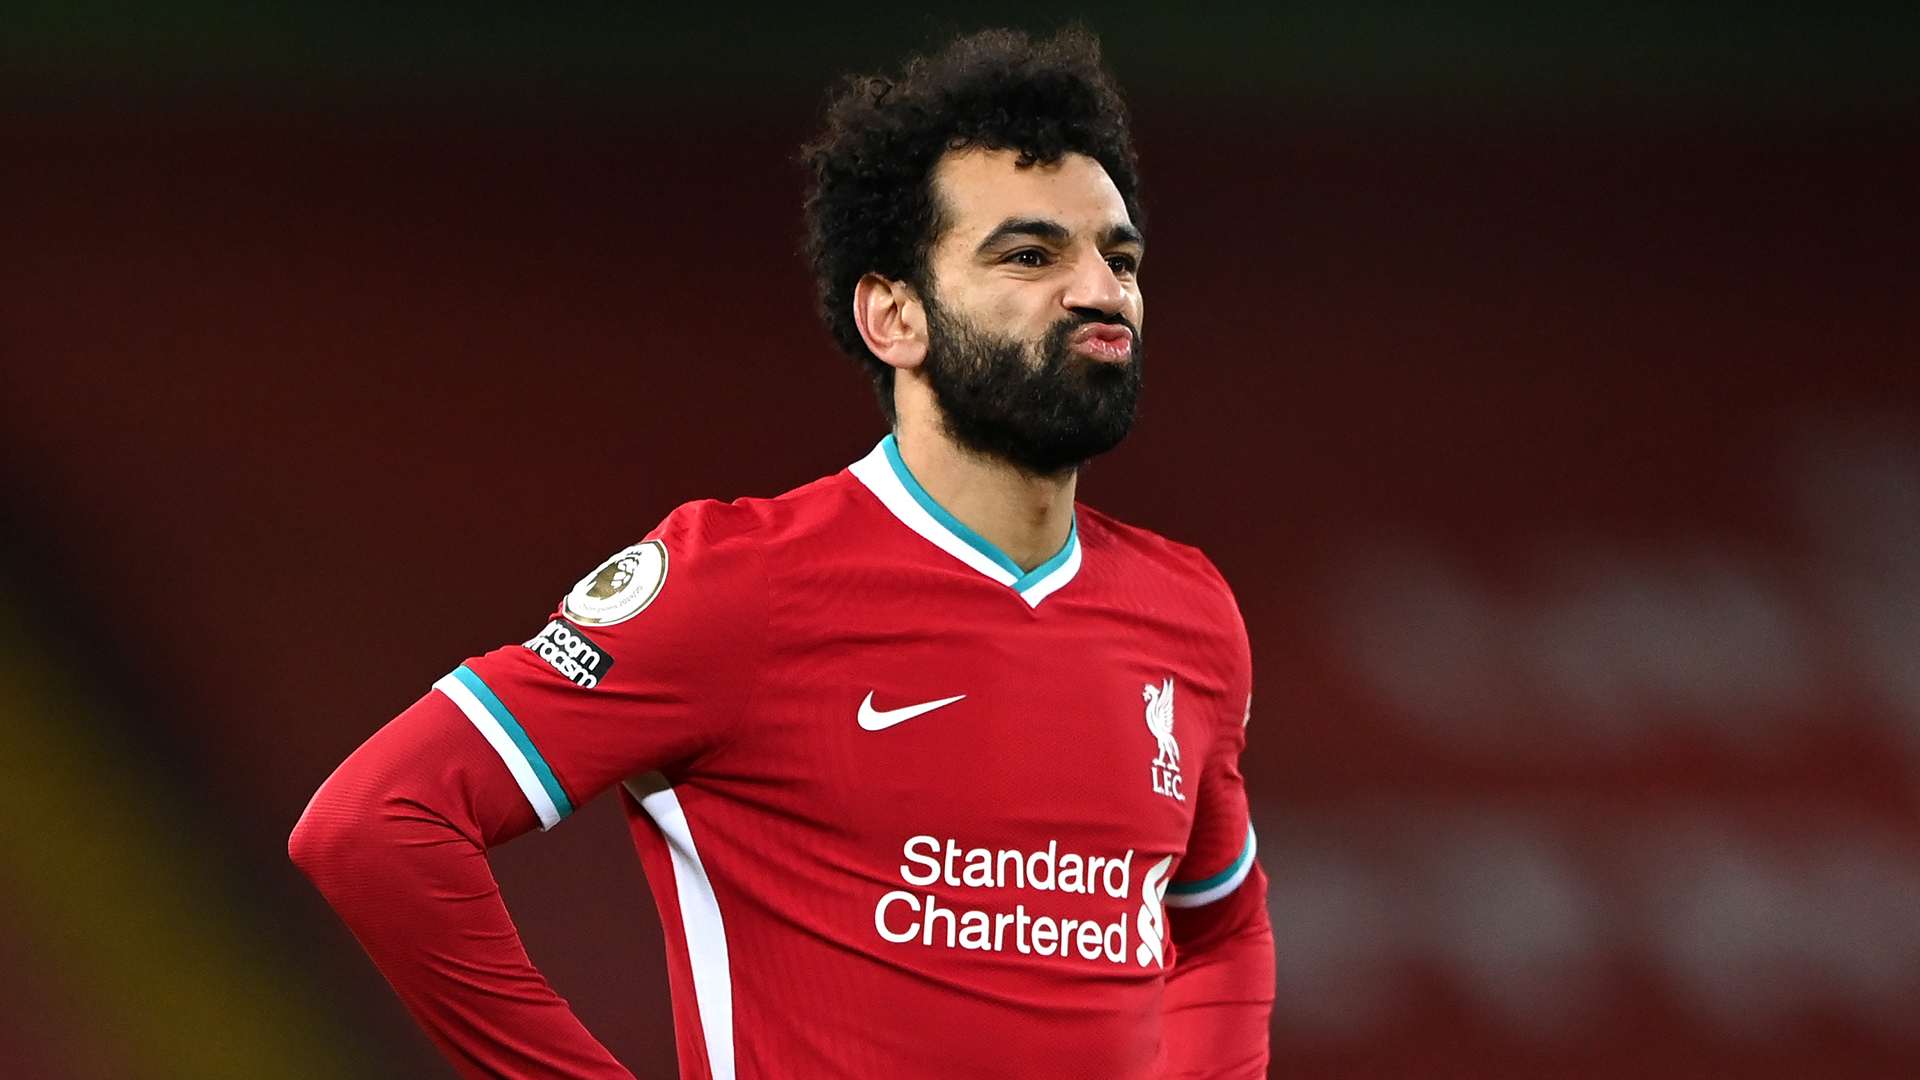 Liverpool star Salah claims he can move Spain between Real Madrid's ties